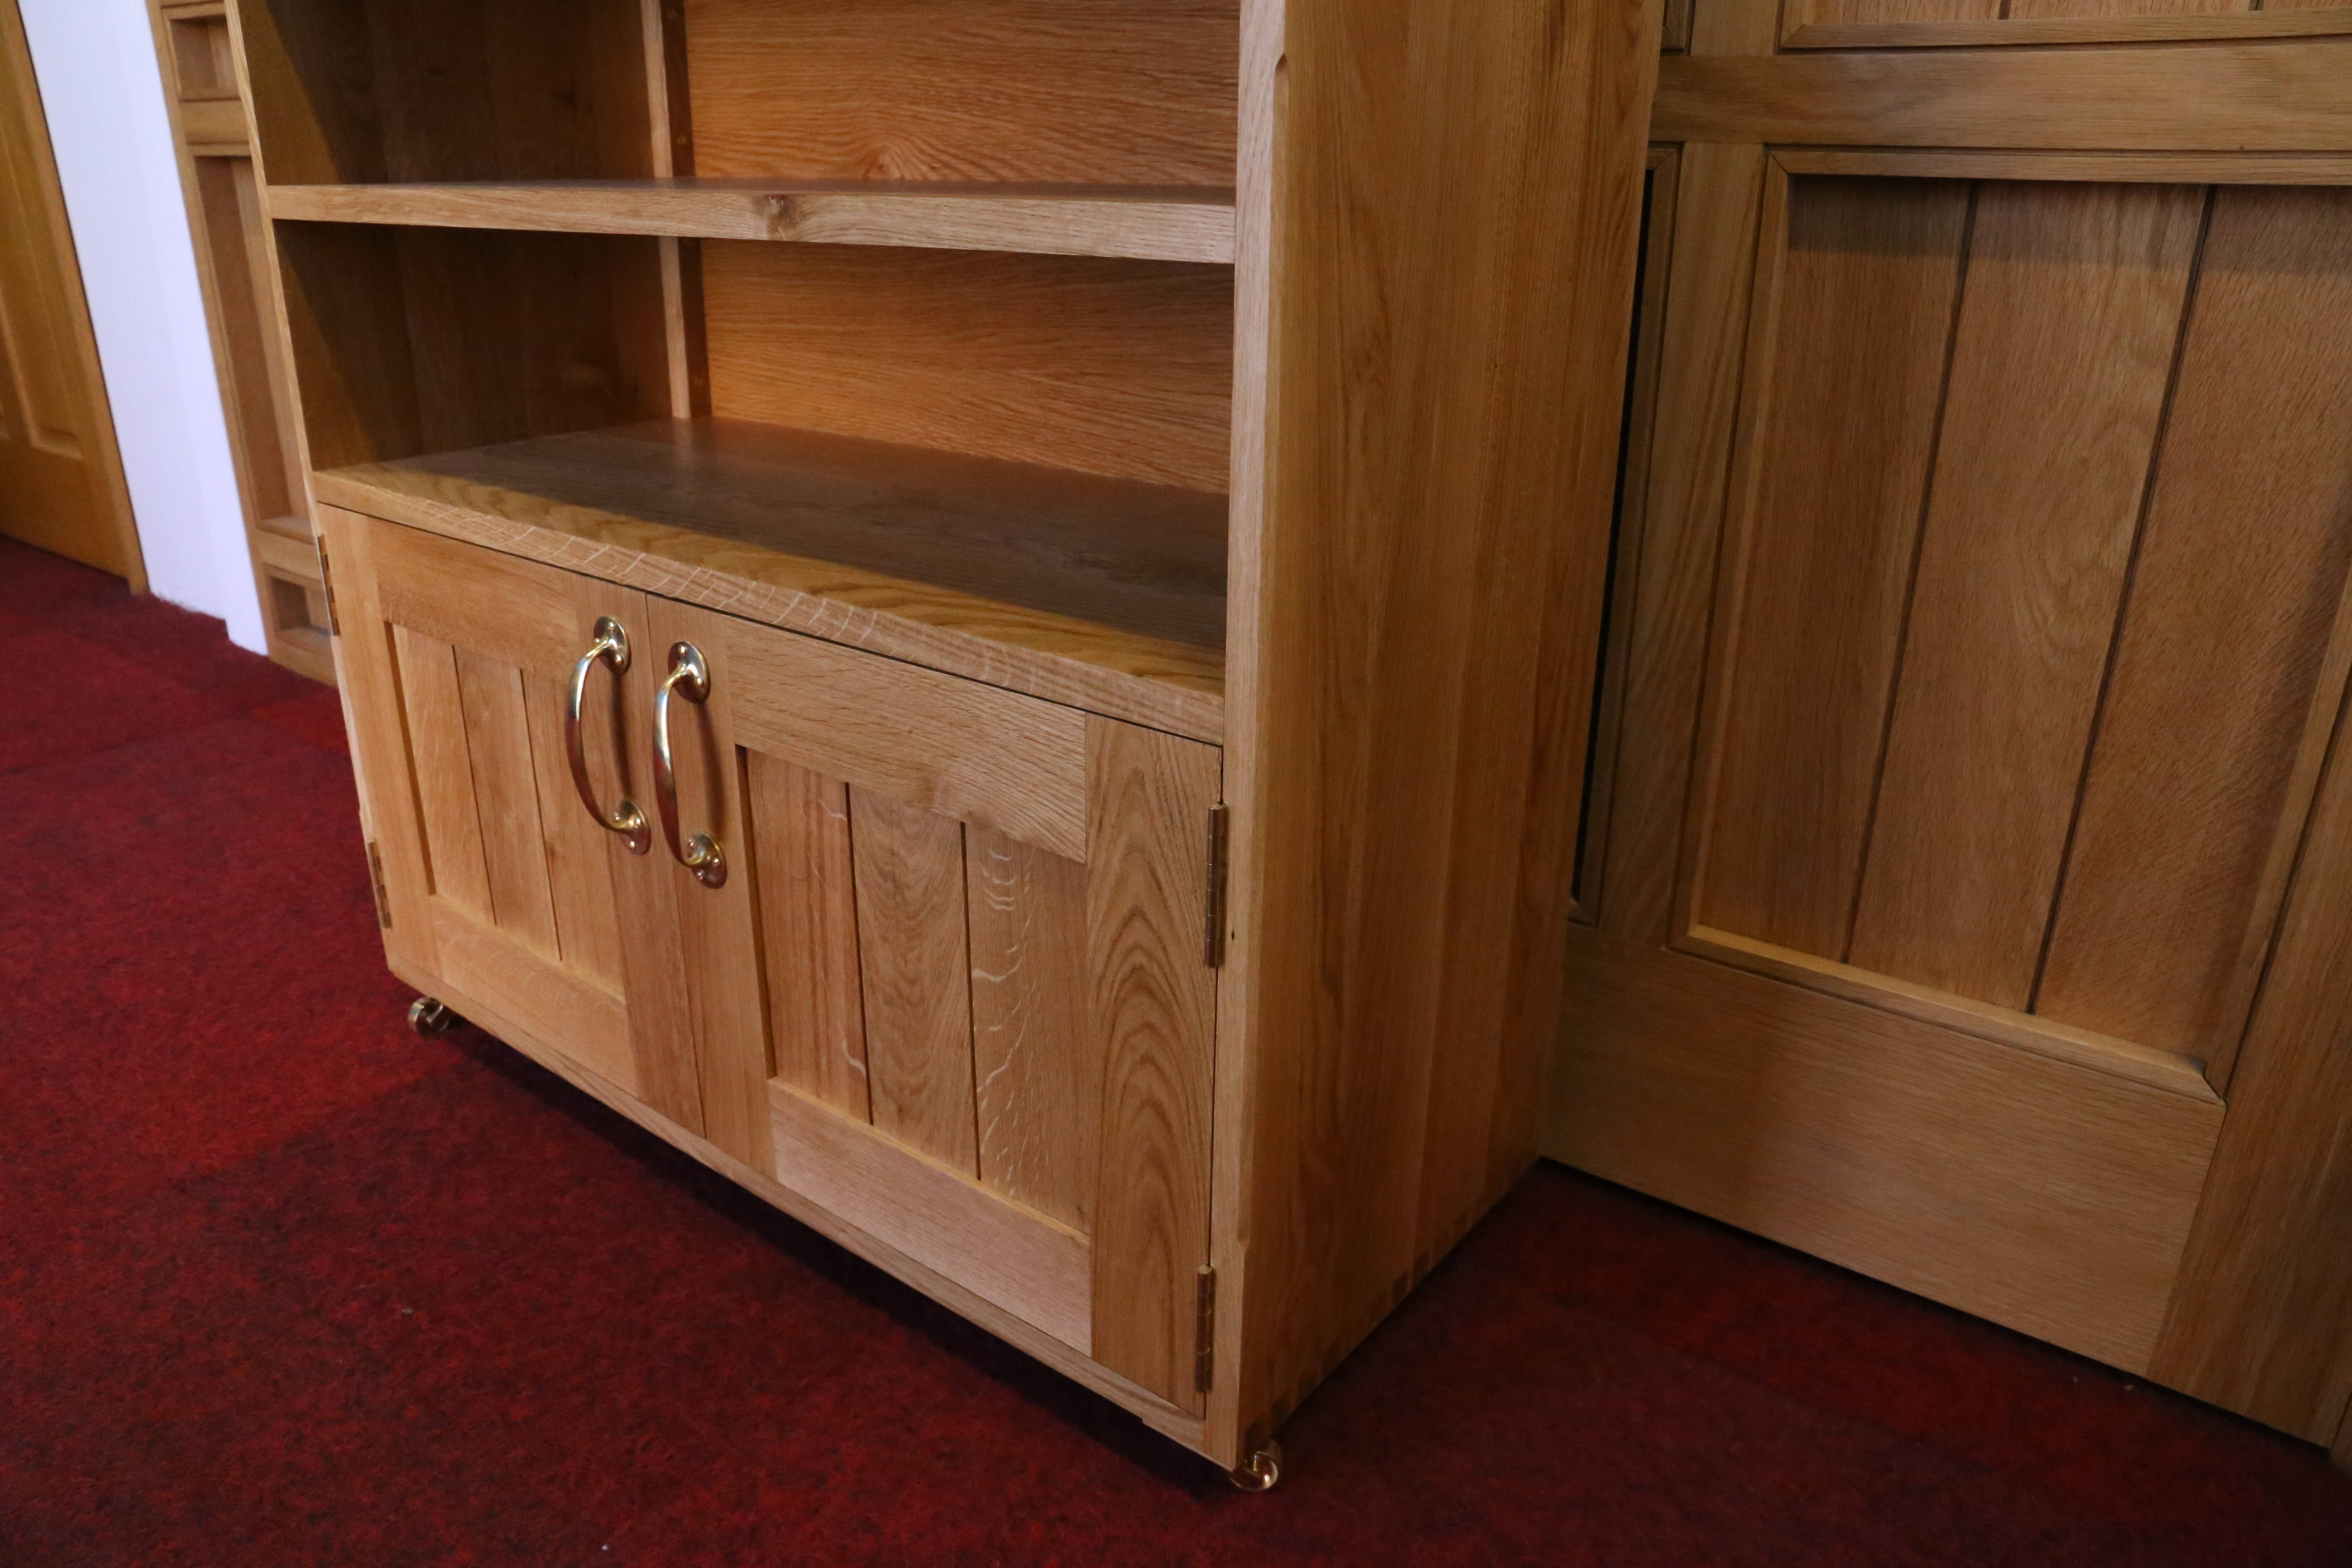 Kitchen Cabinets Solid Wood Construction Solid Oak Cabinet Dovetail Construction Products In